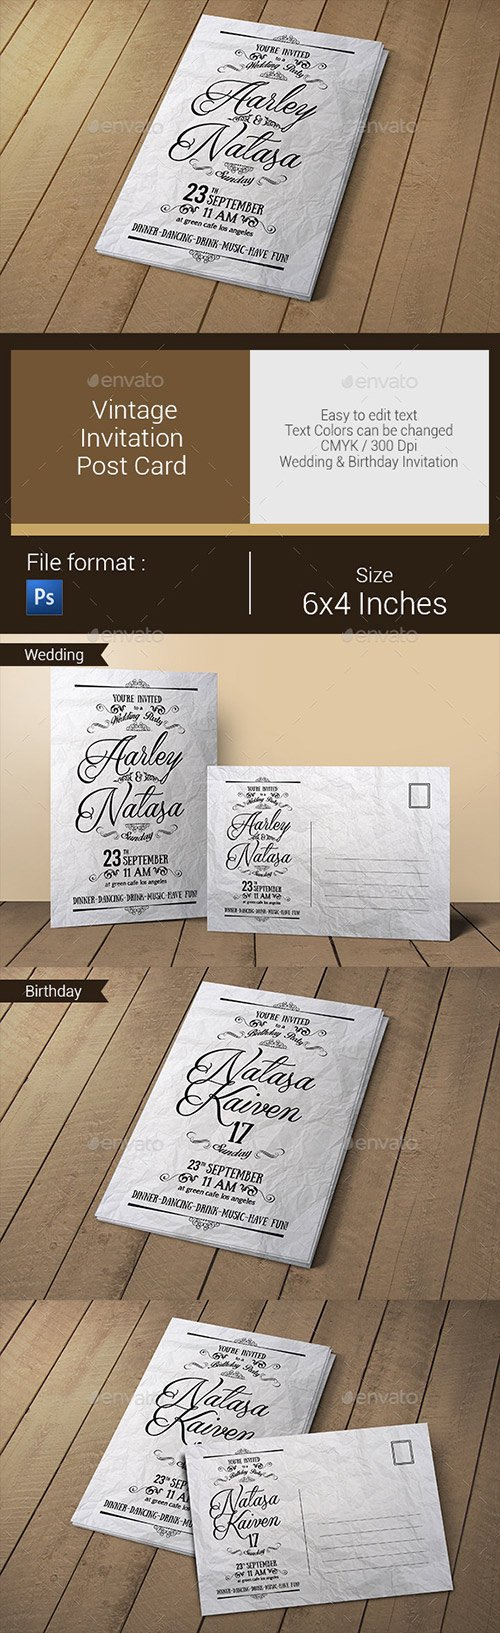 Graphicriver - Vintage Invitation & Post Card 10783764